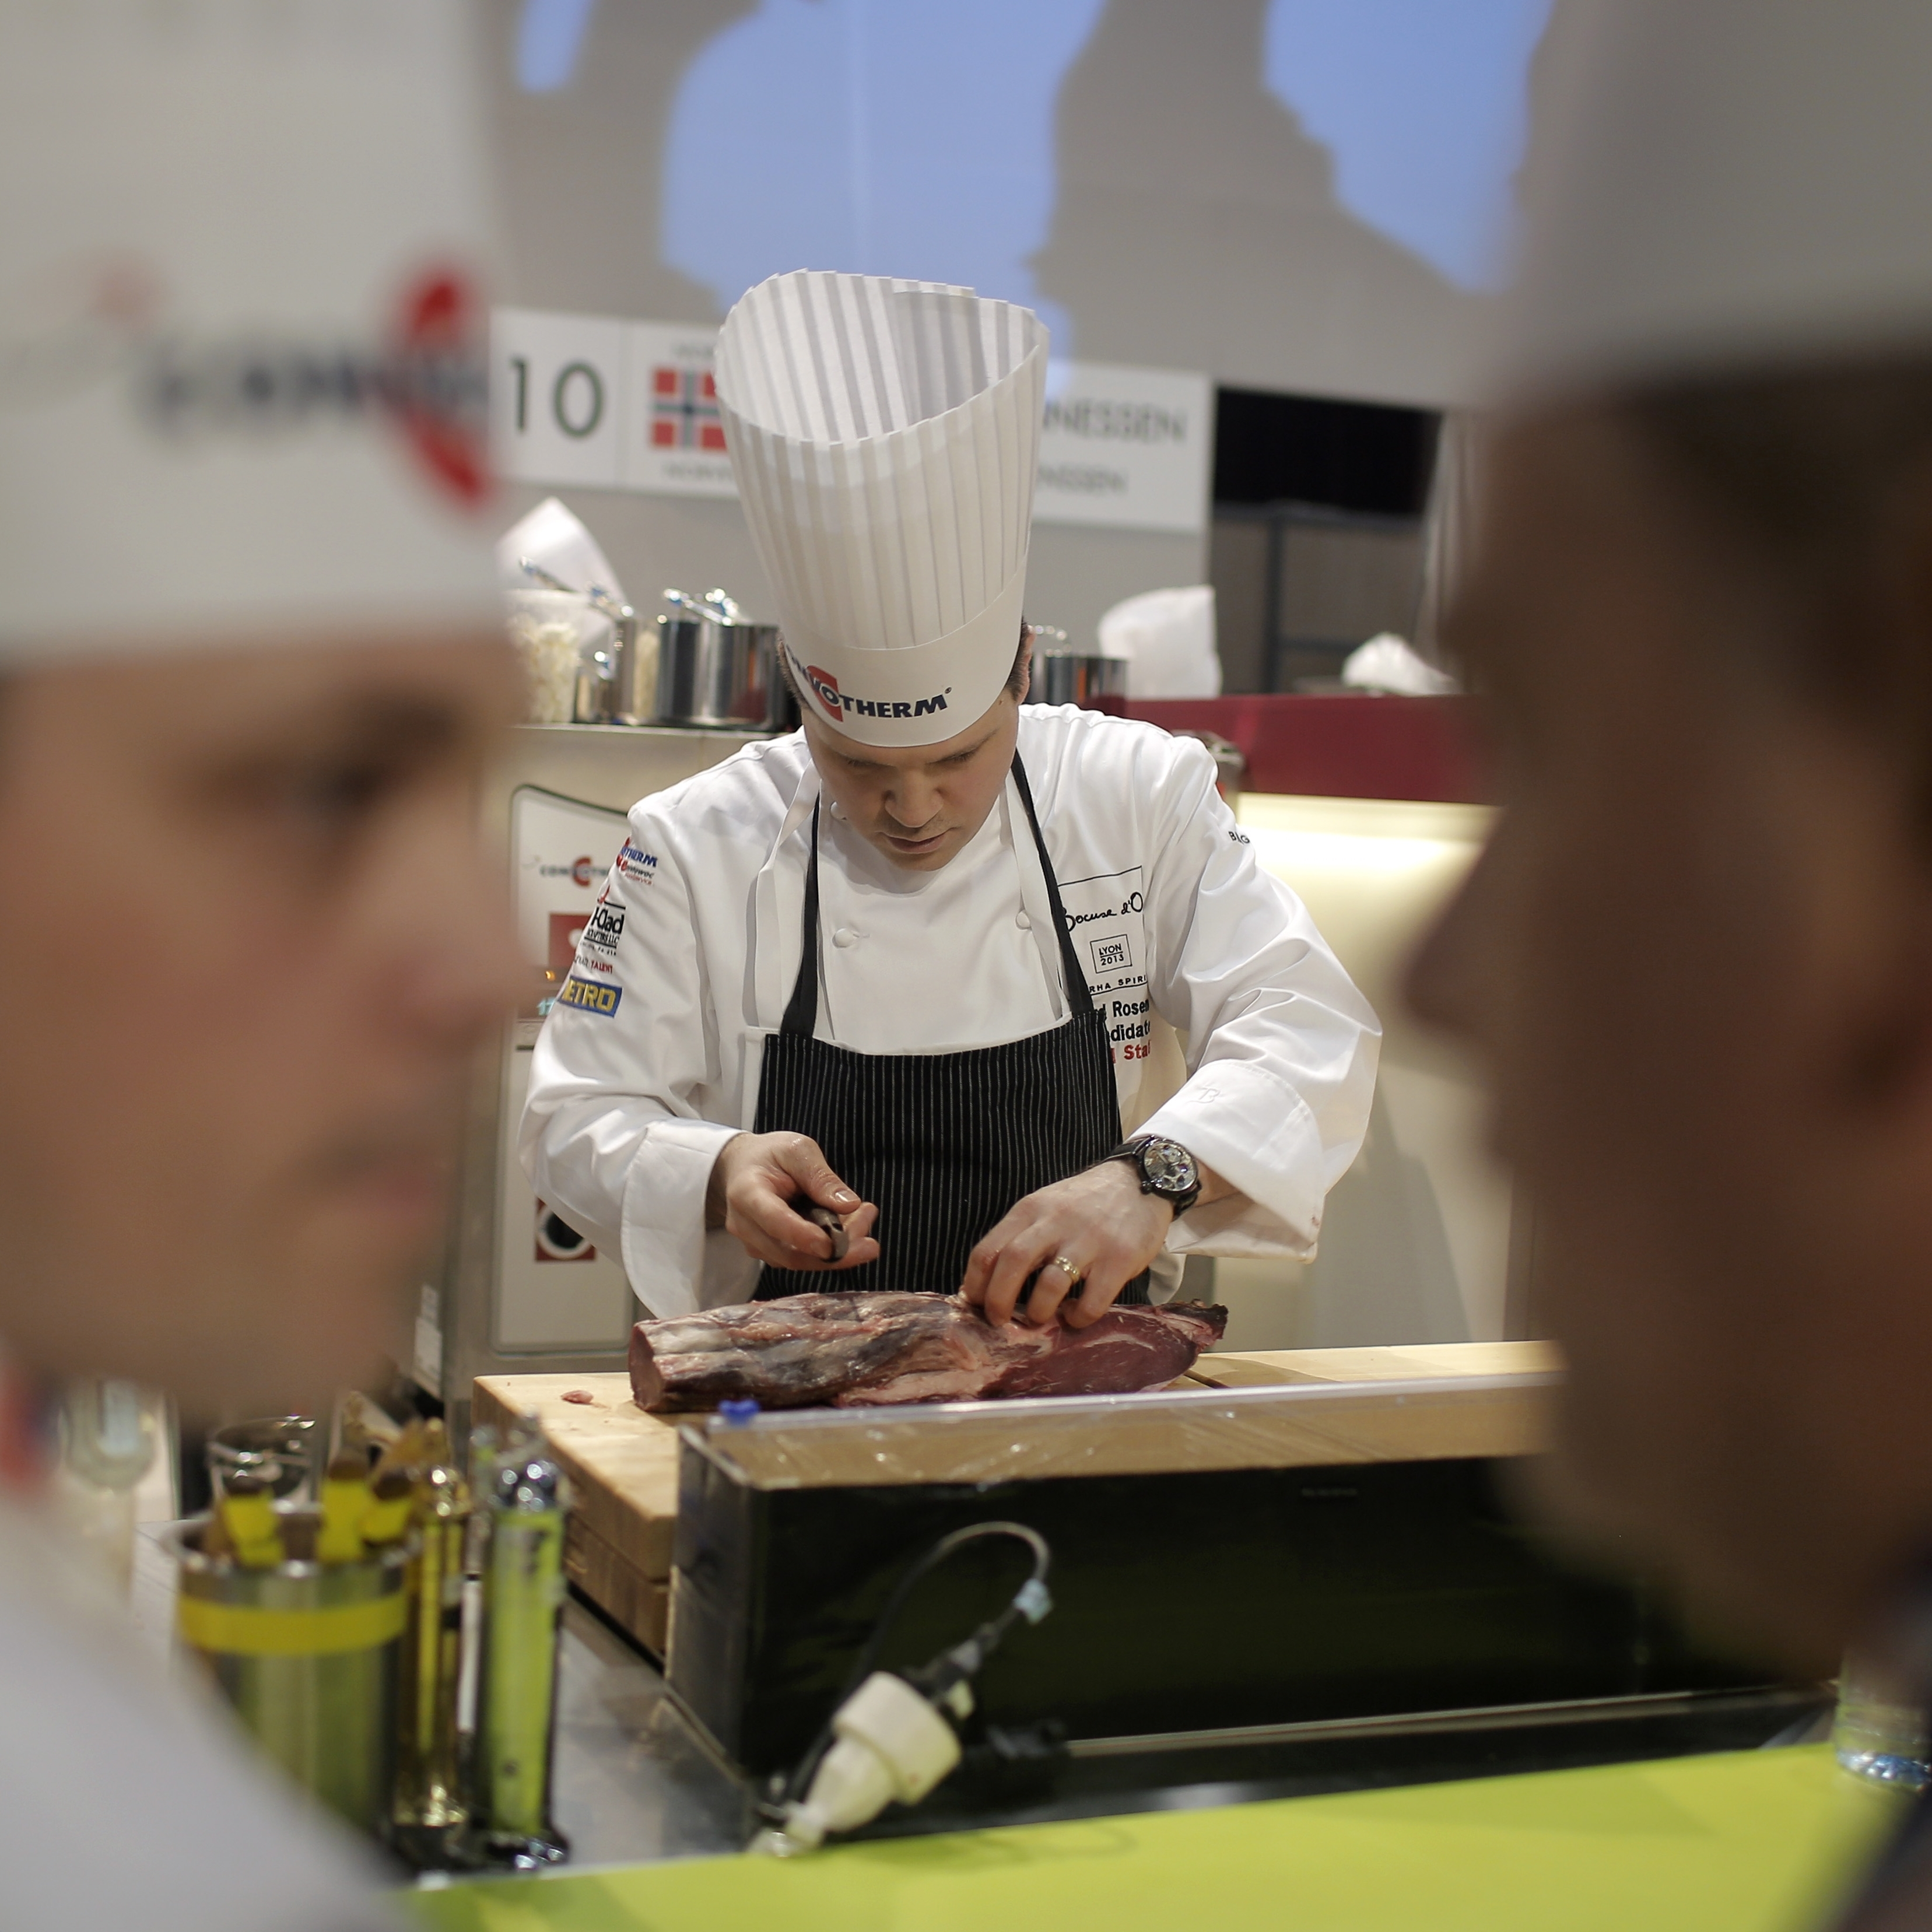 Richard Rosendale of the U.S. team prepares food during the Bocuse d'Or in Lyon, France. The U.S. has long been the underdog in the event.